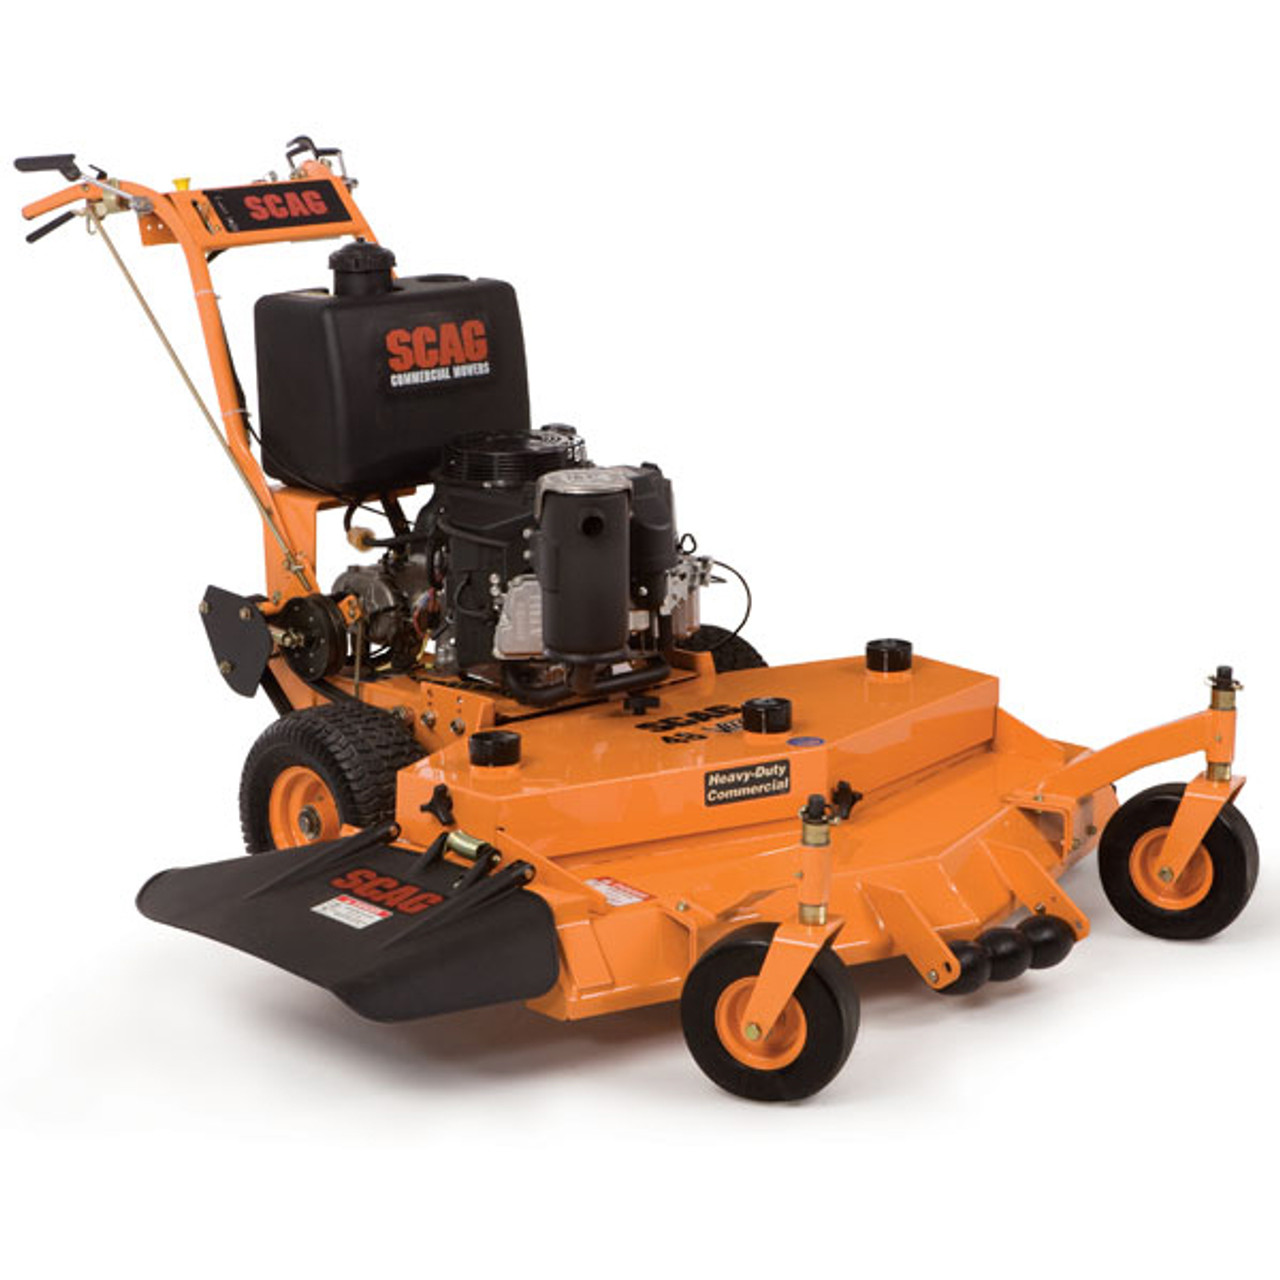 "Scag SW48V-14FS 48"" Velocity Deck Walk Behind Zero-Turn Lawn Mower w/ 14hp Kawasaki Engine Image"